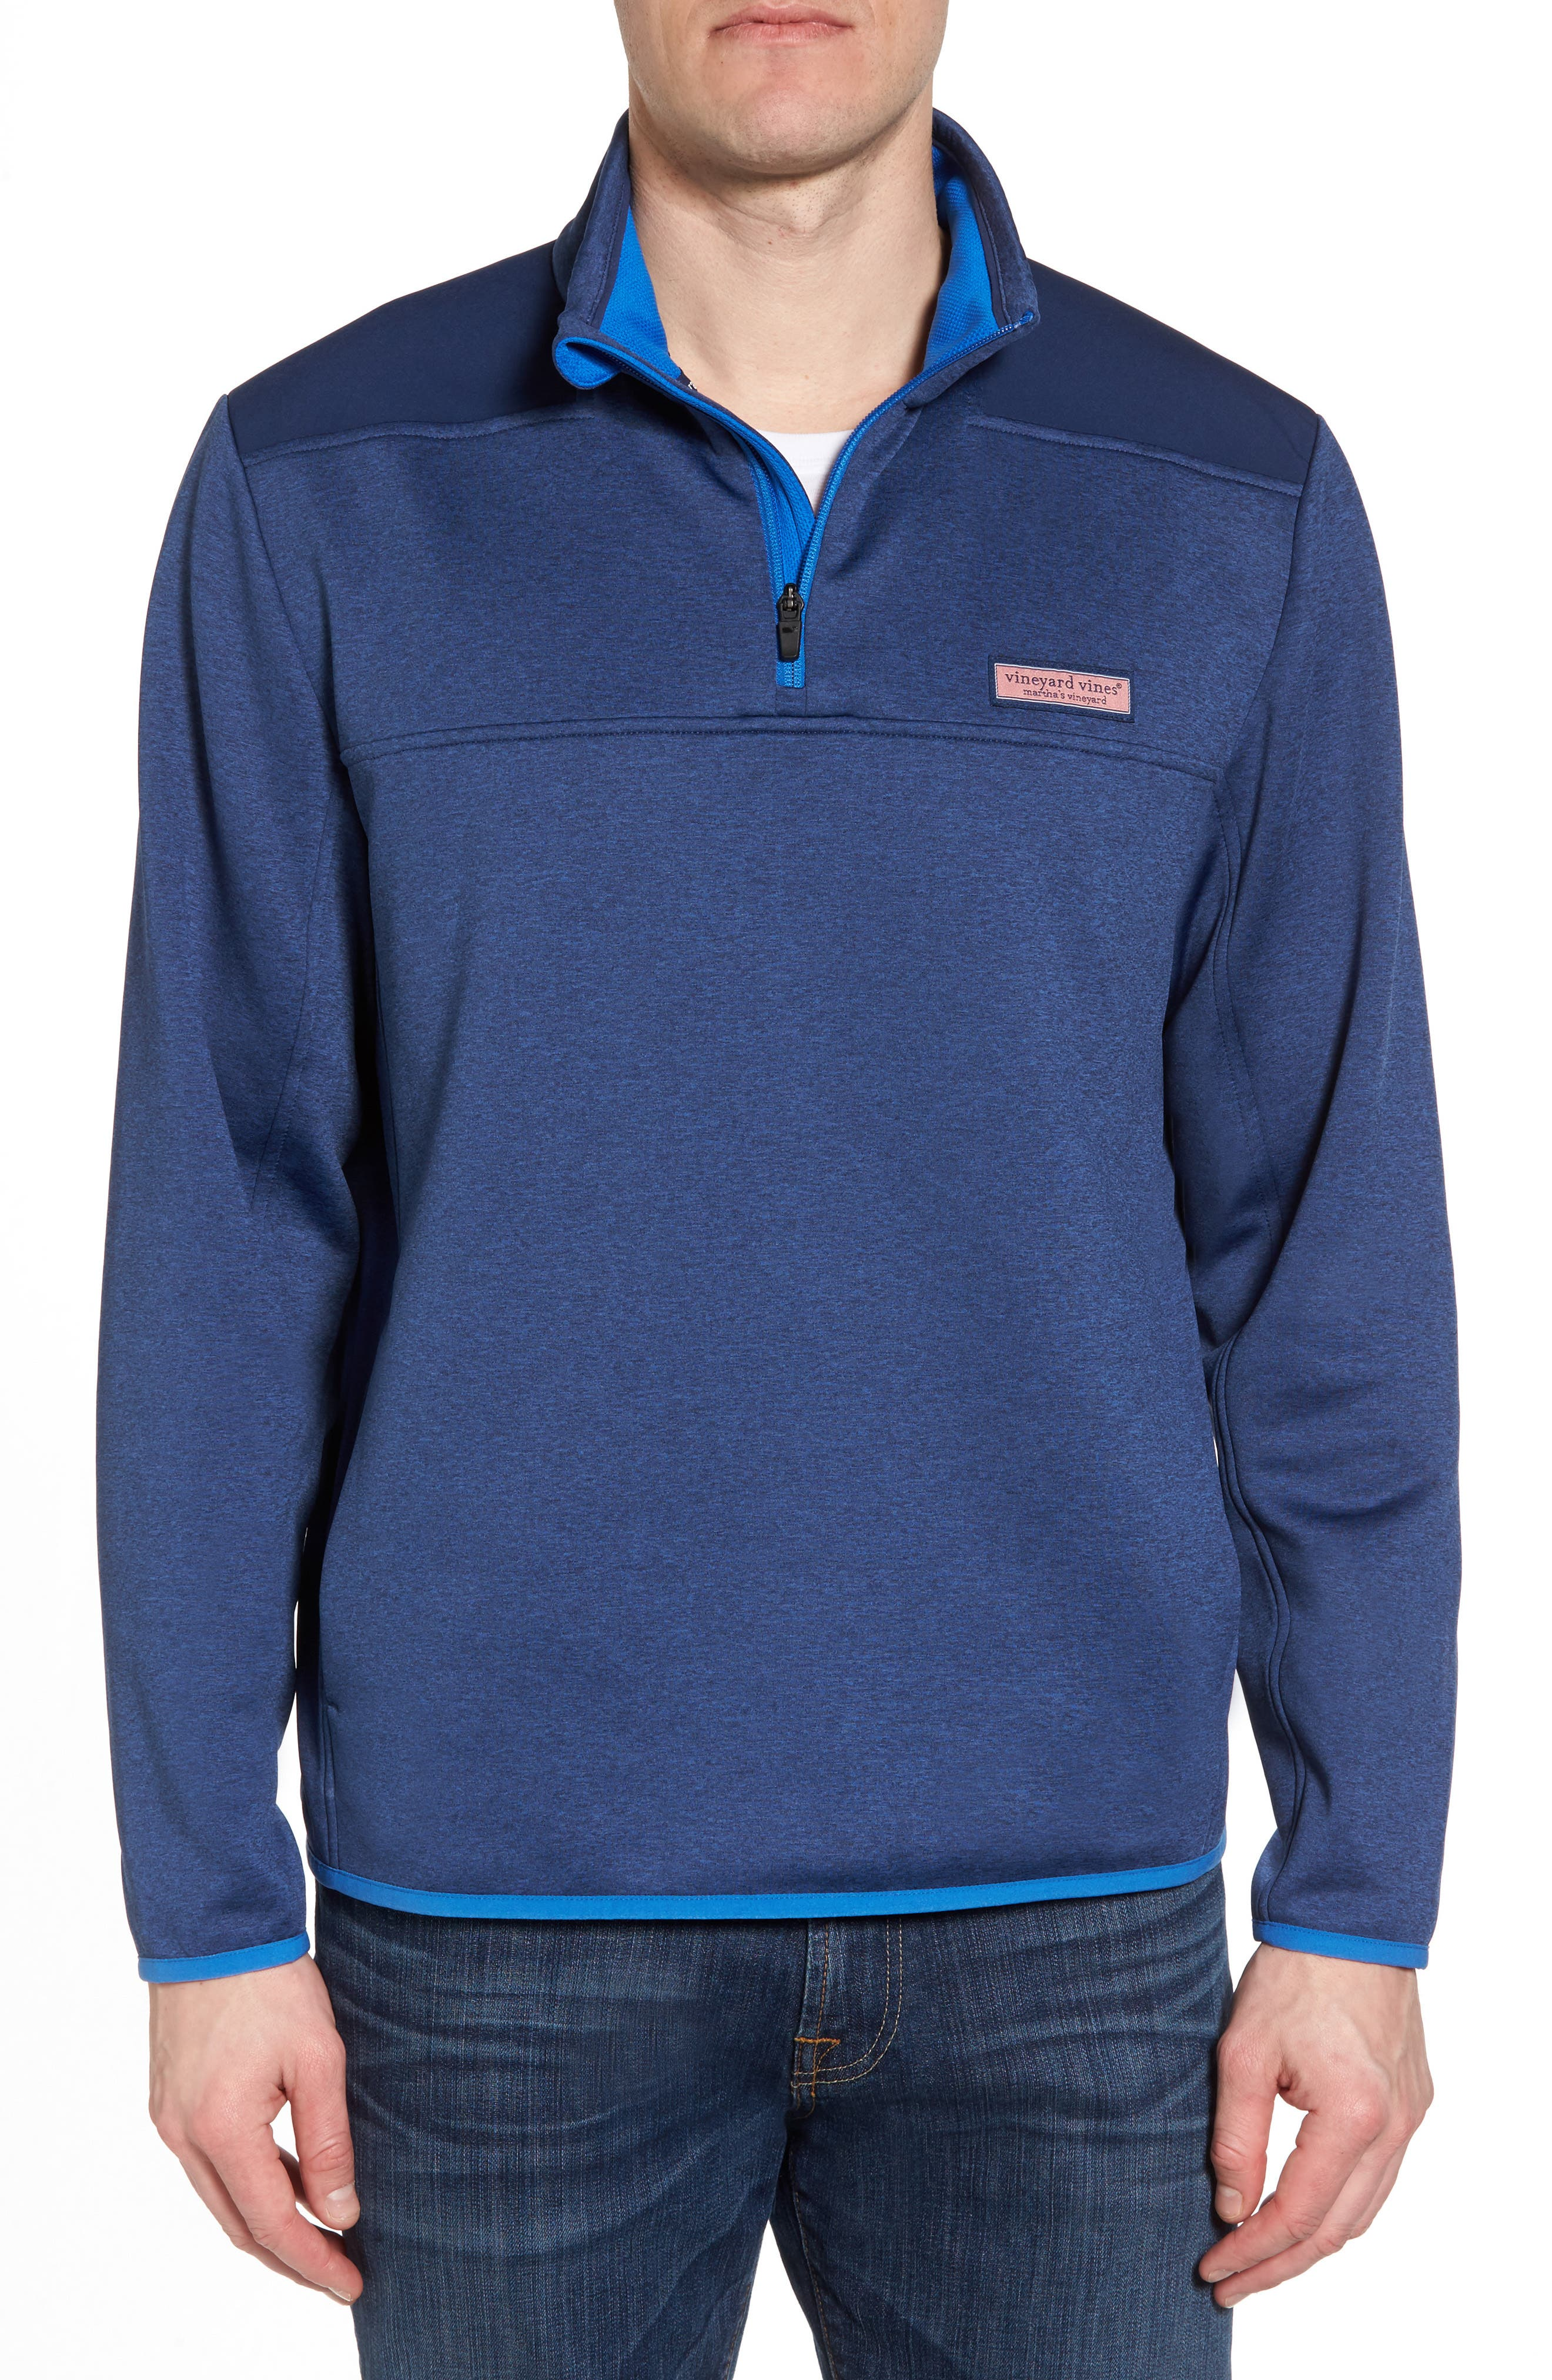 vineyard vines Shep Performance Fleece Quarter Zip Pullover